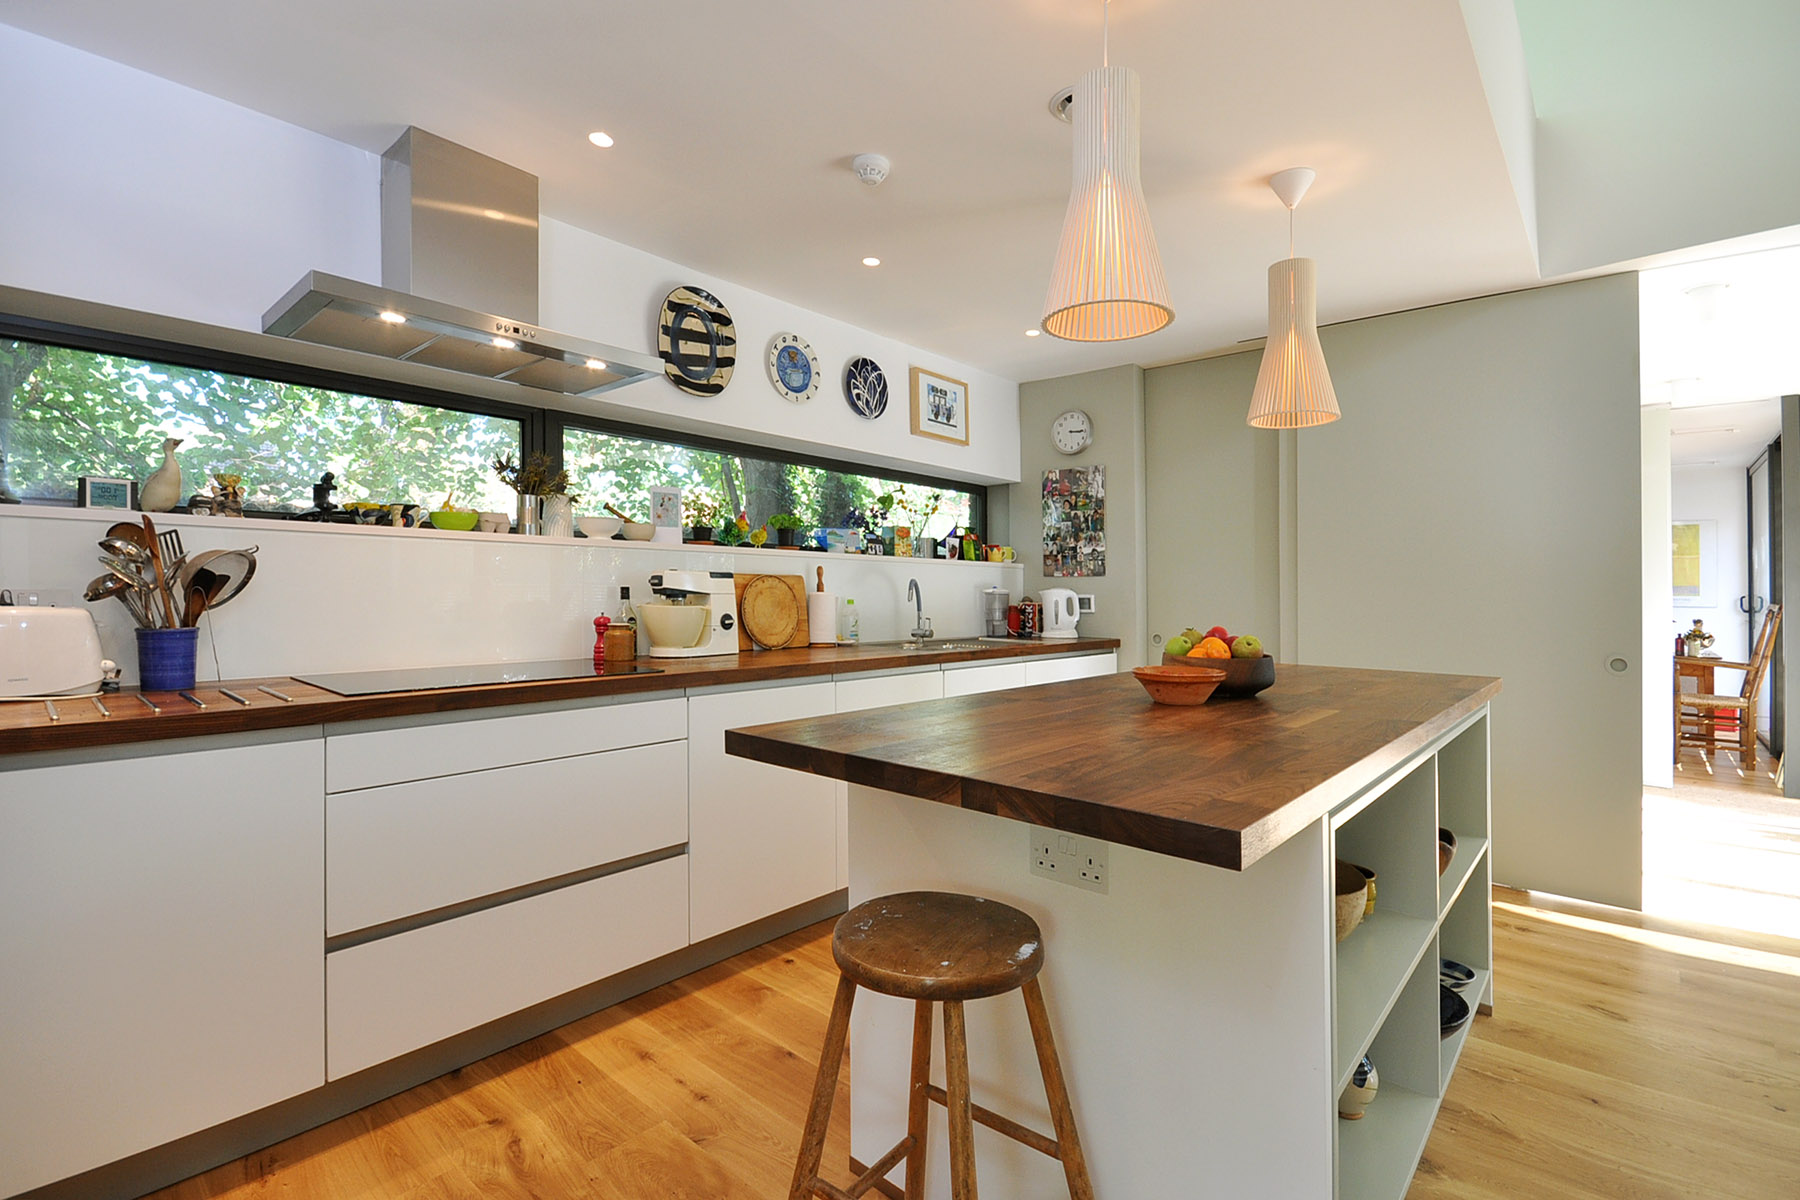 kitchen ideas ealing 28 images kitchen ideas ealing 28